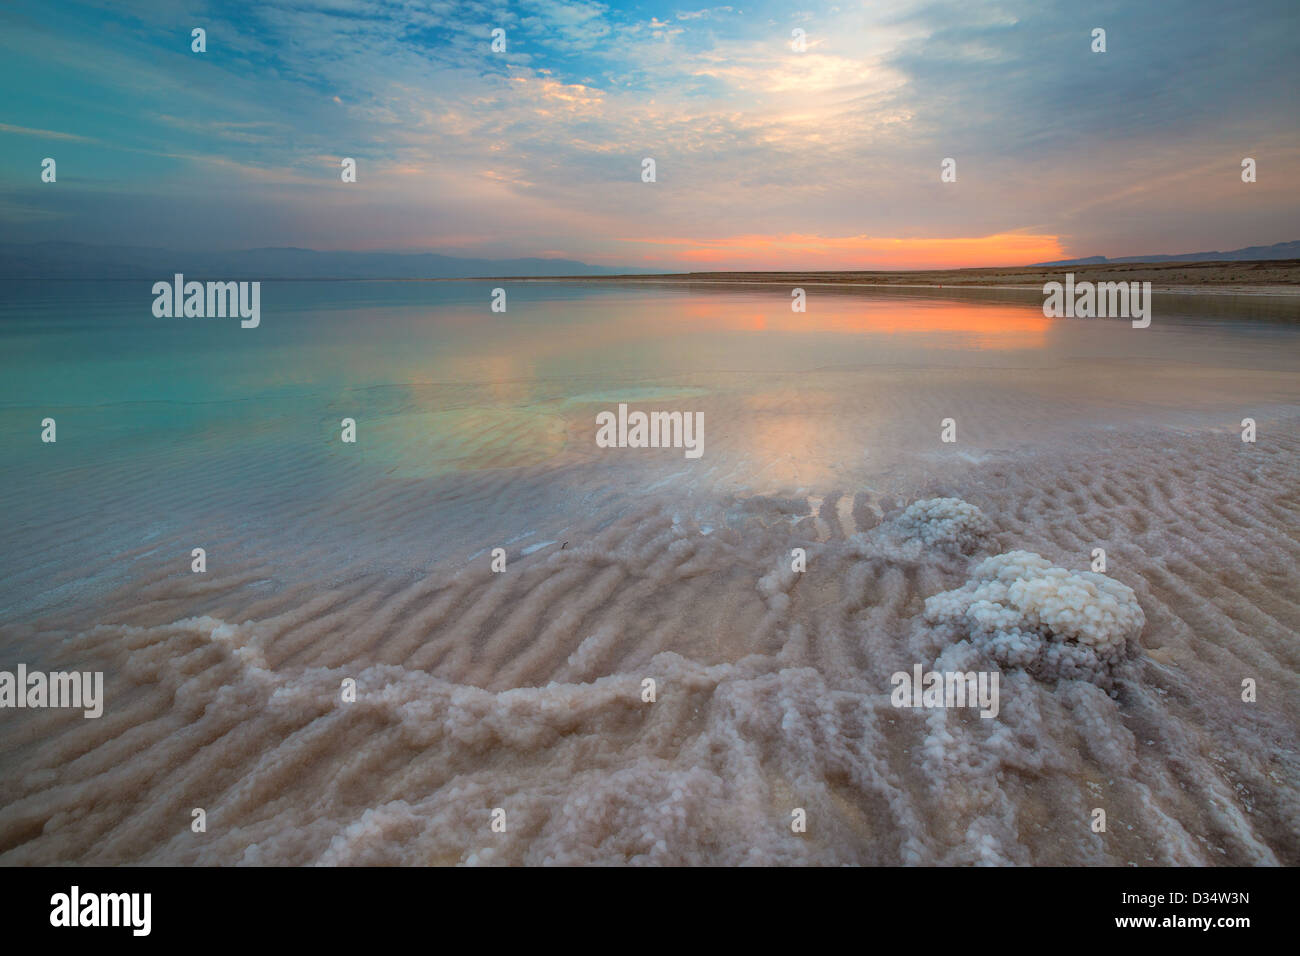 View of Dead Sea coastline at sunset time Stock Photo